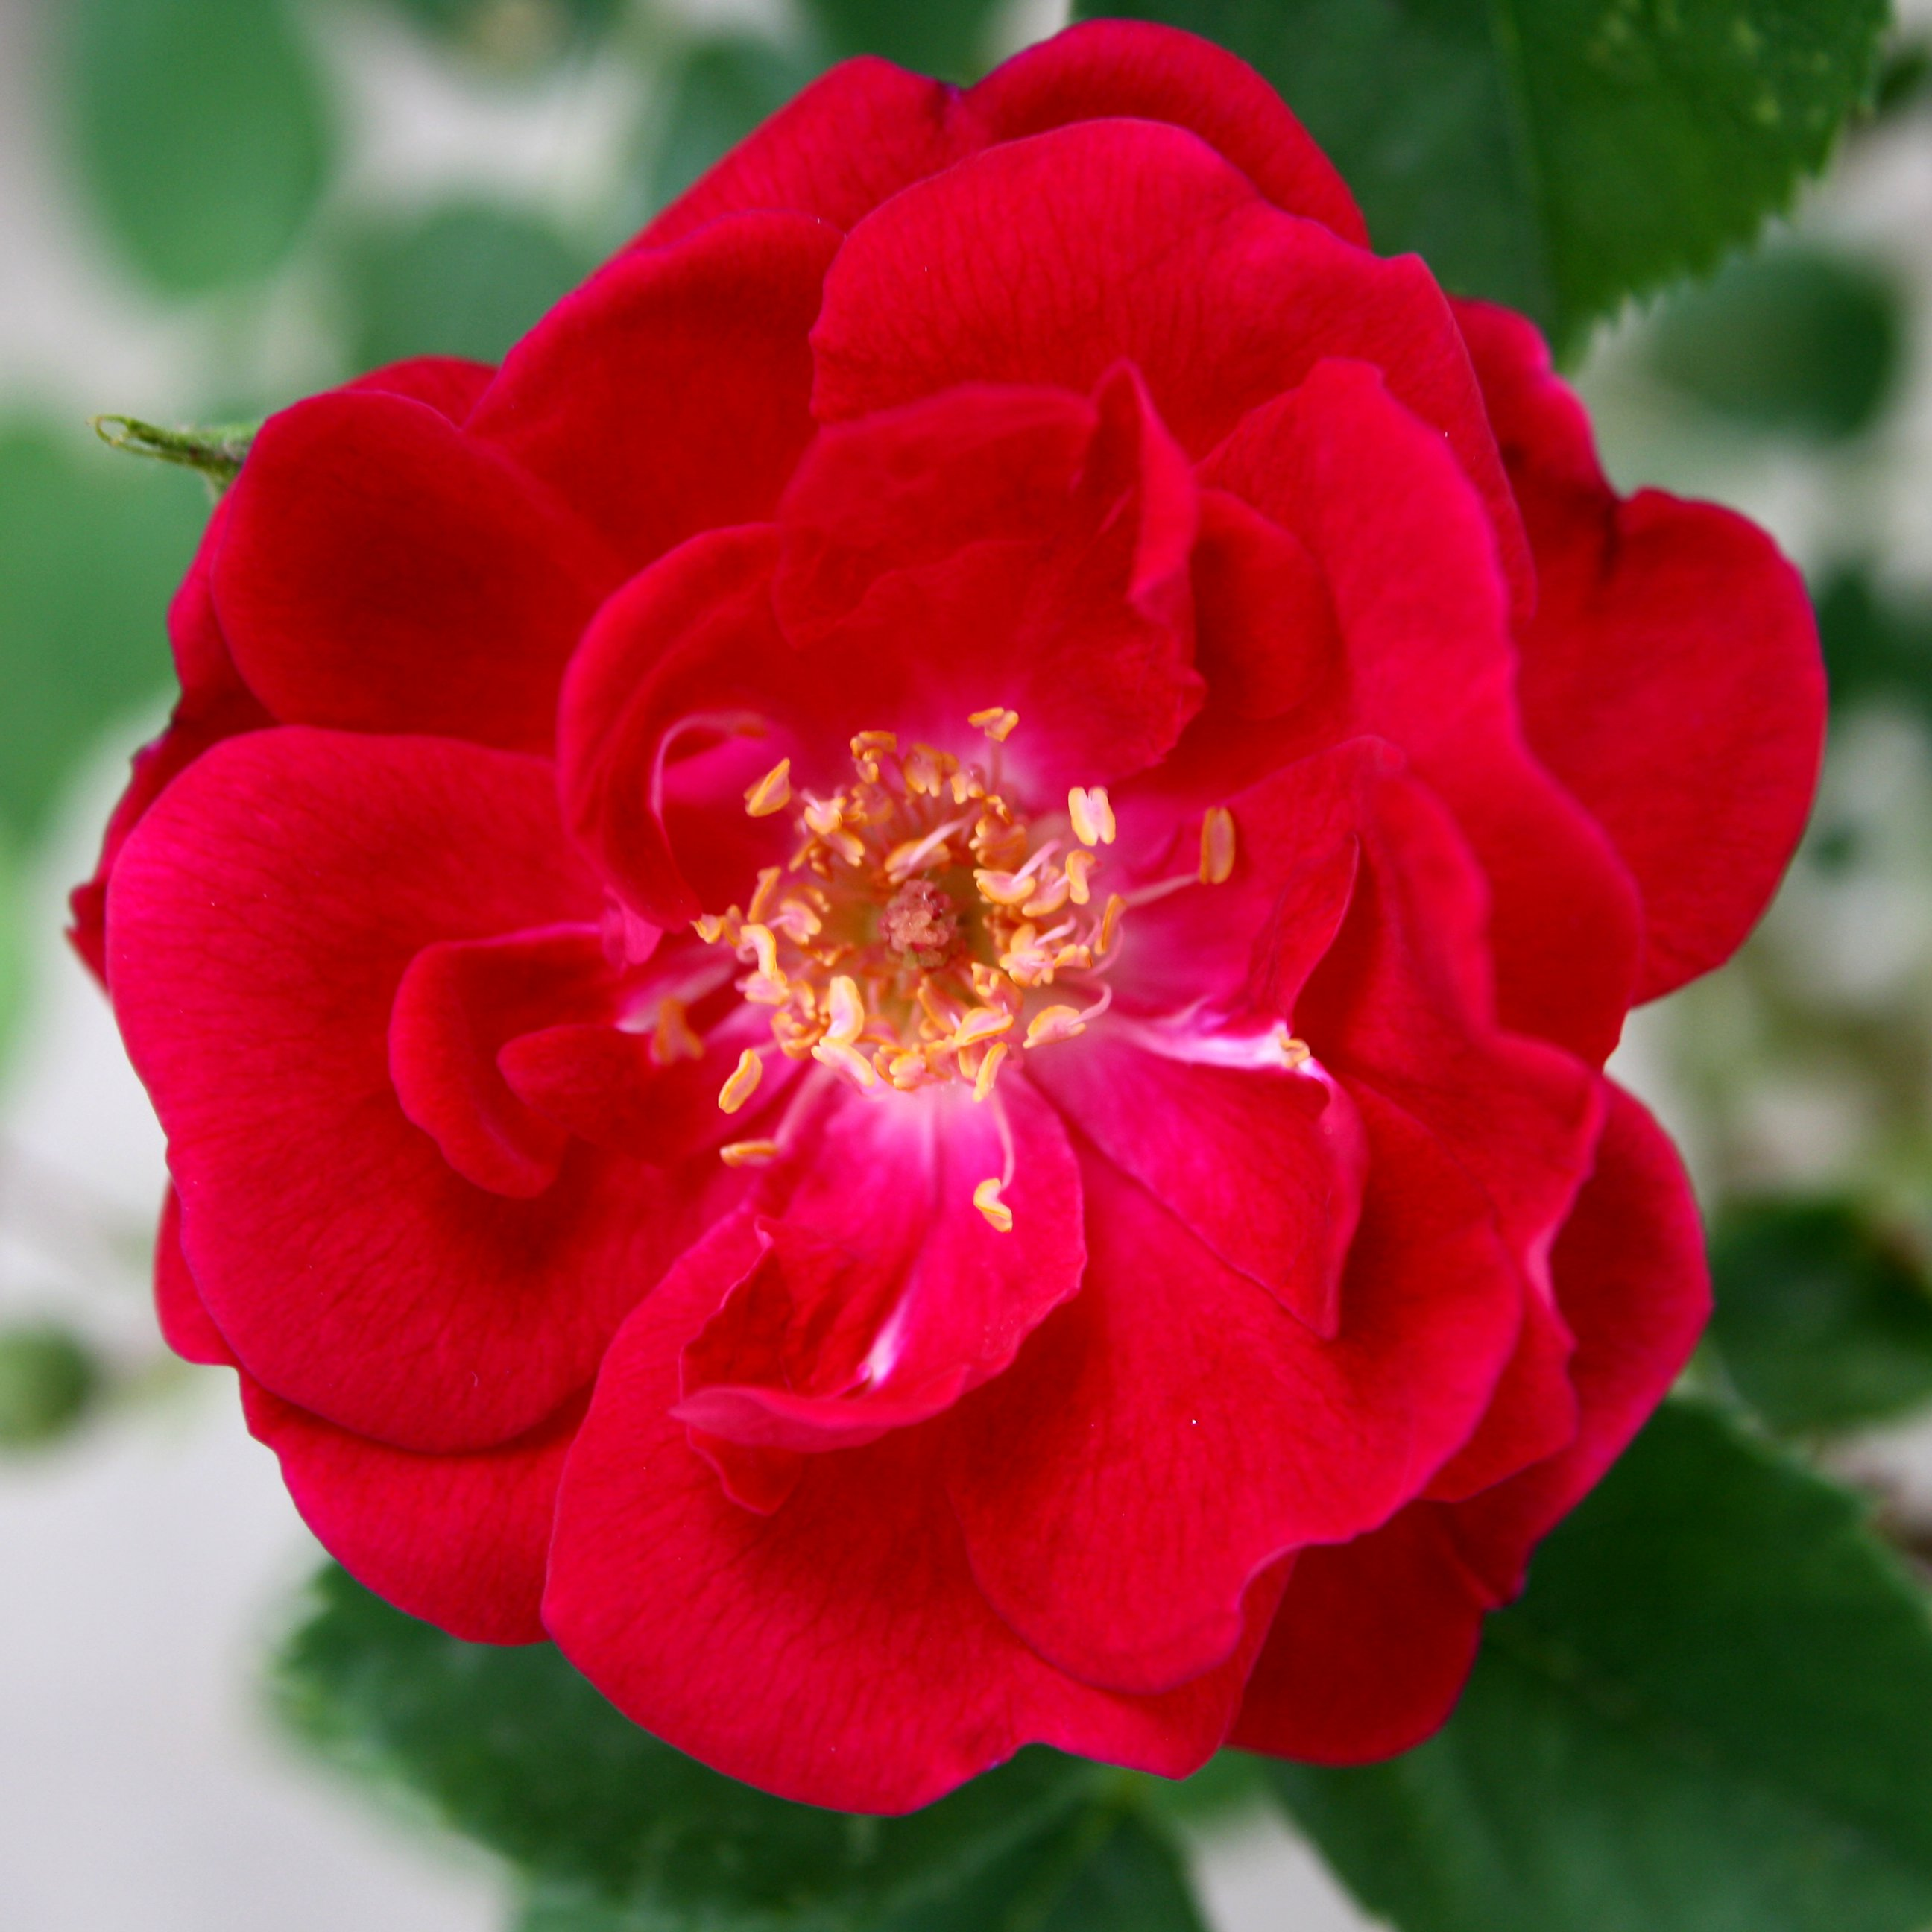 wild red rose picture free photograph photos public domain. Black Bedroom Furniture Sets. Home Design Ideas